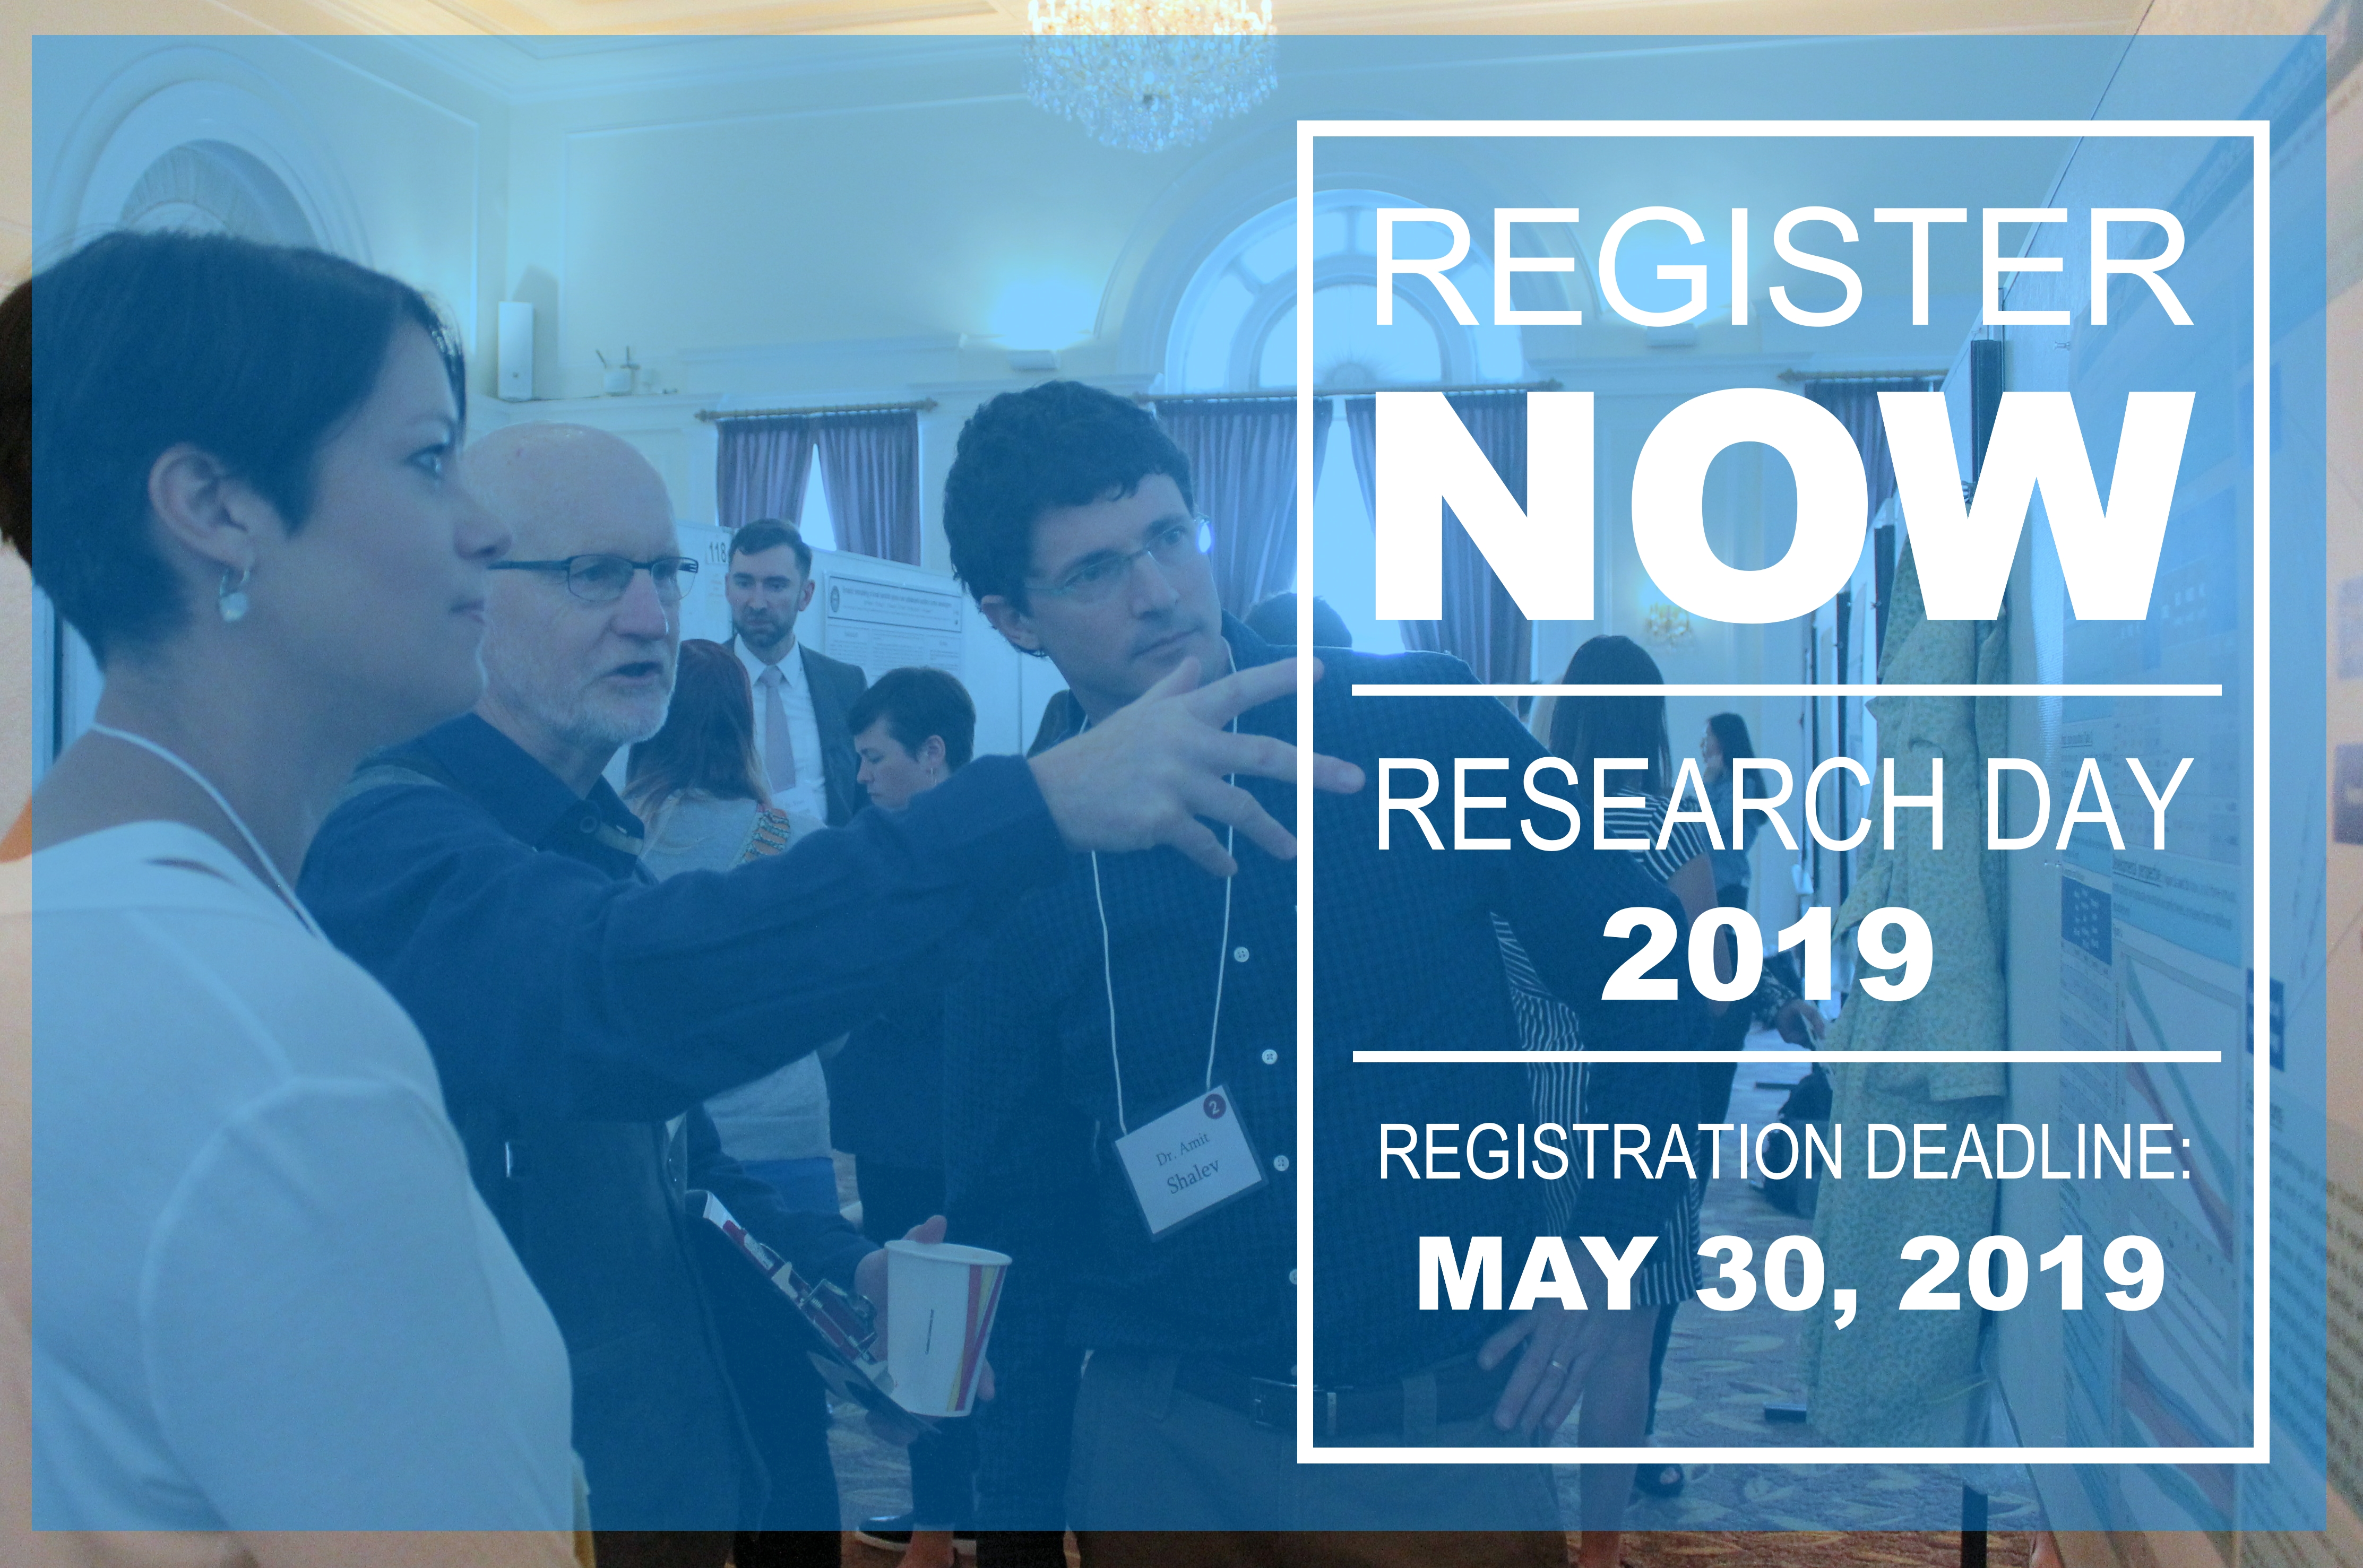 Register Now for Research Day 2019